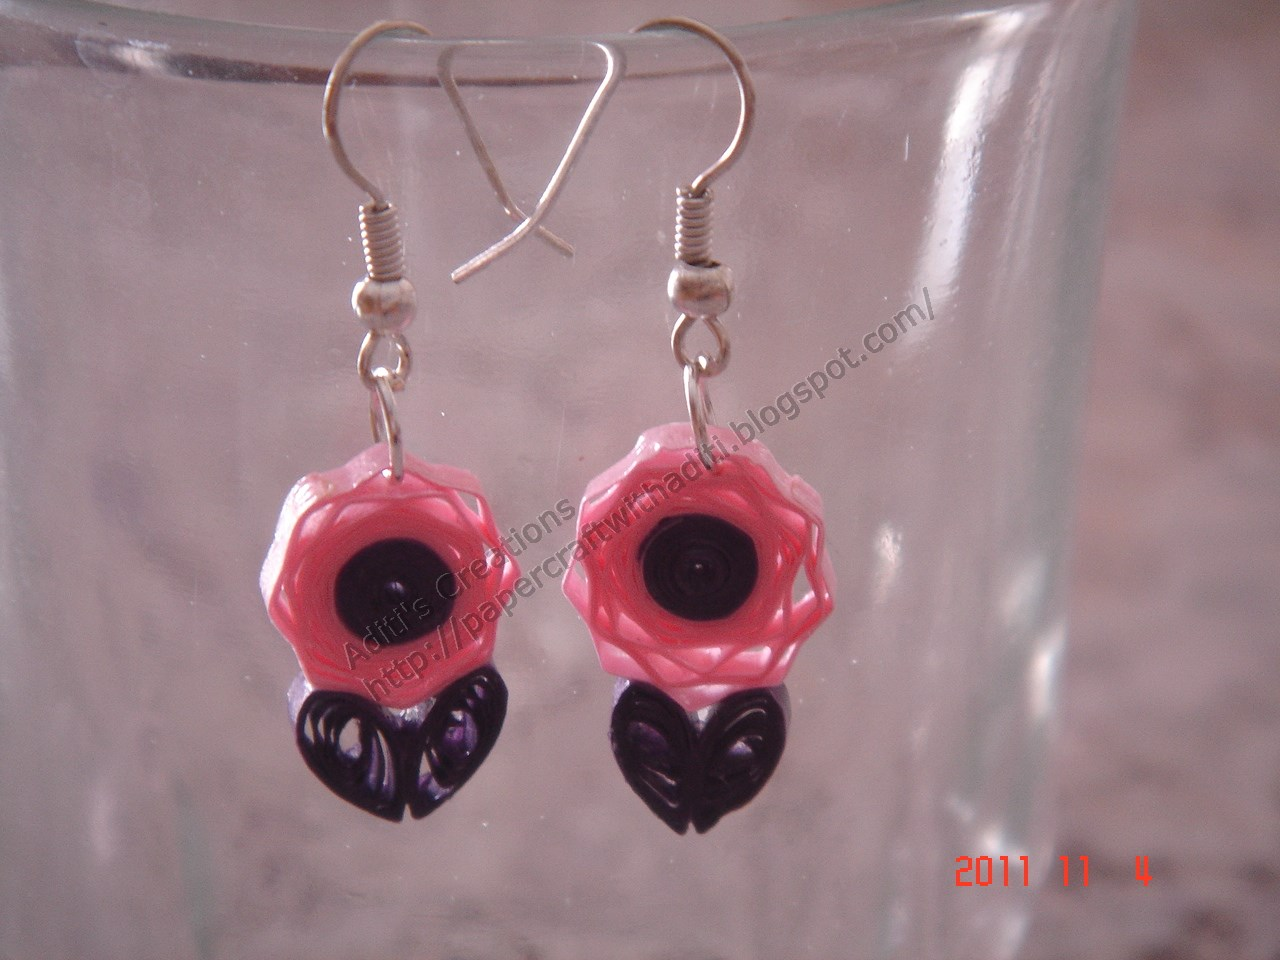 Quilling Earrings Designs Images : PaperCraftwithAditi: Quilled Earrings!